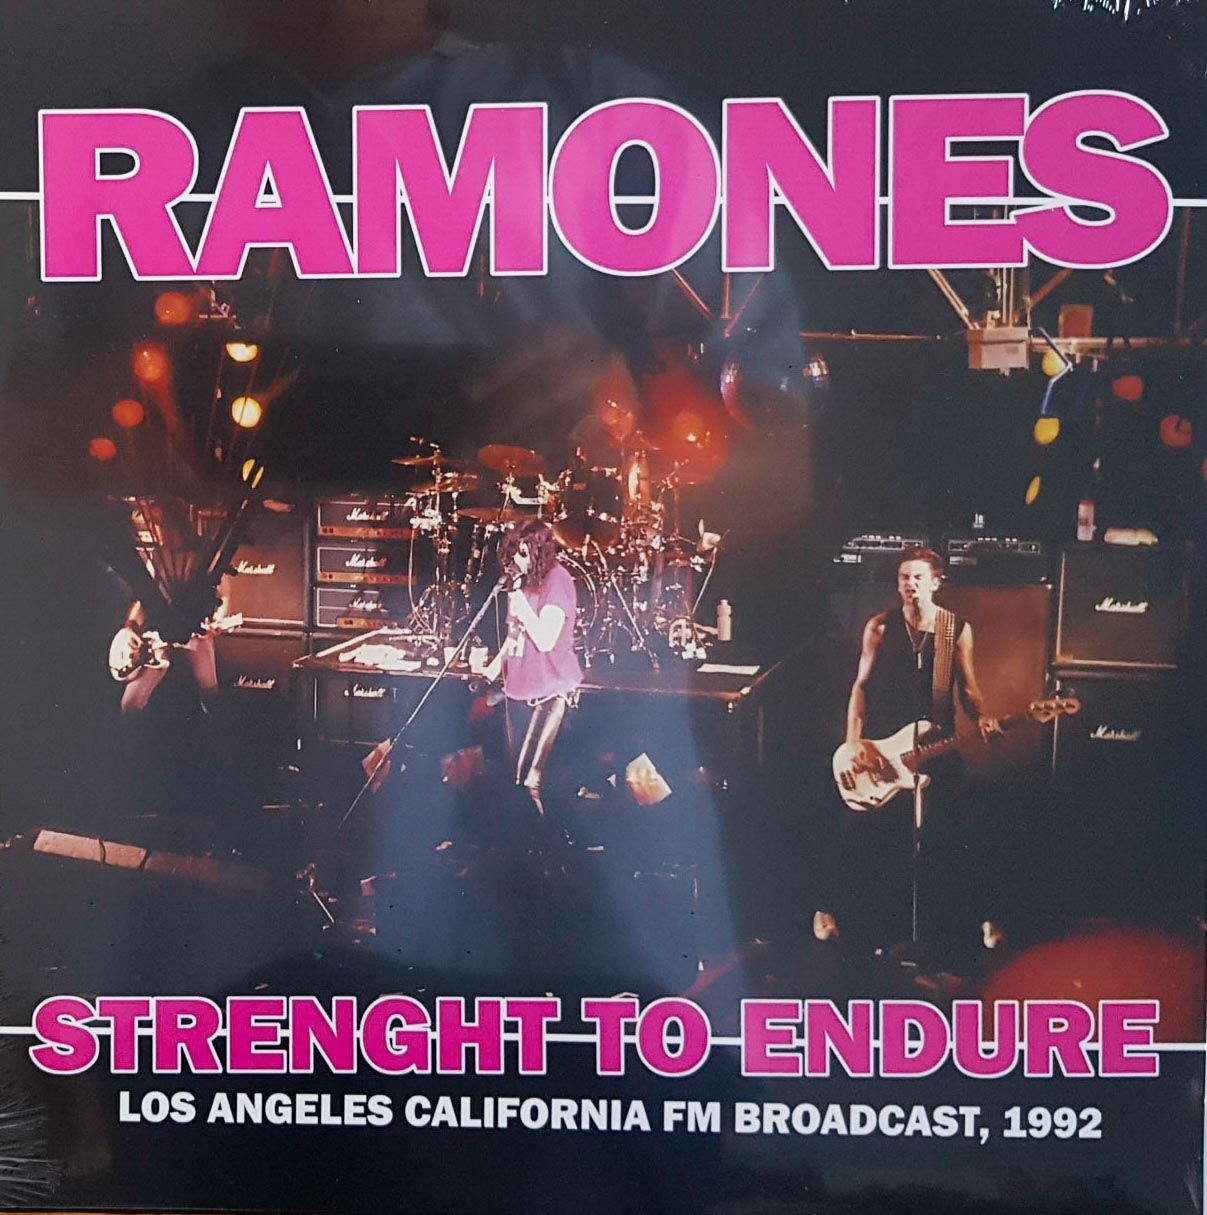 Lp Vinil Ramones Strength To Endure